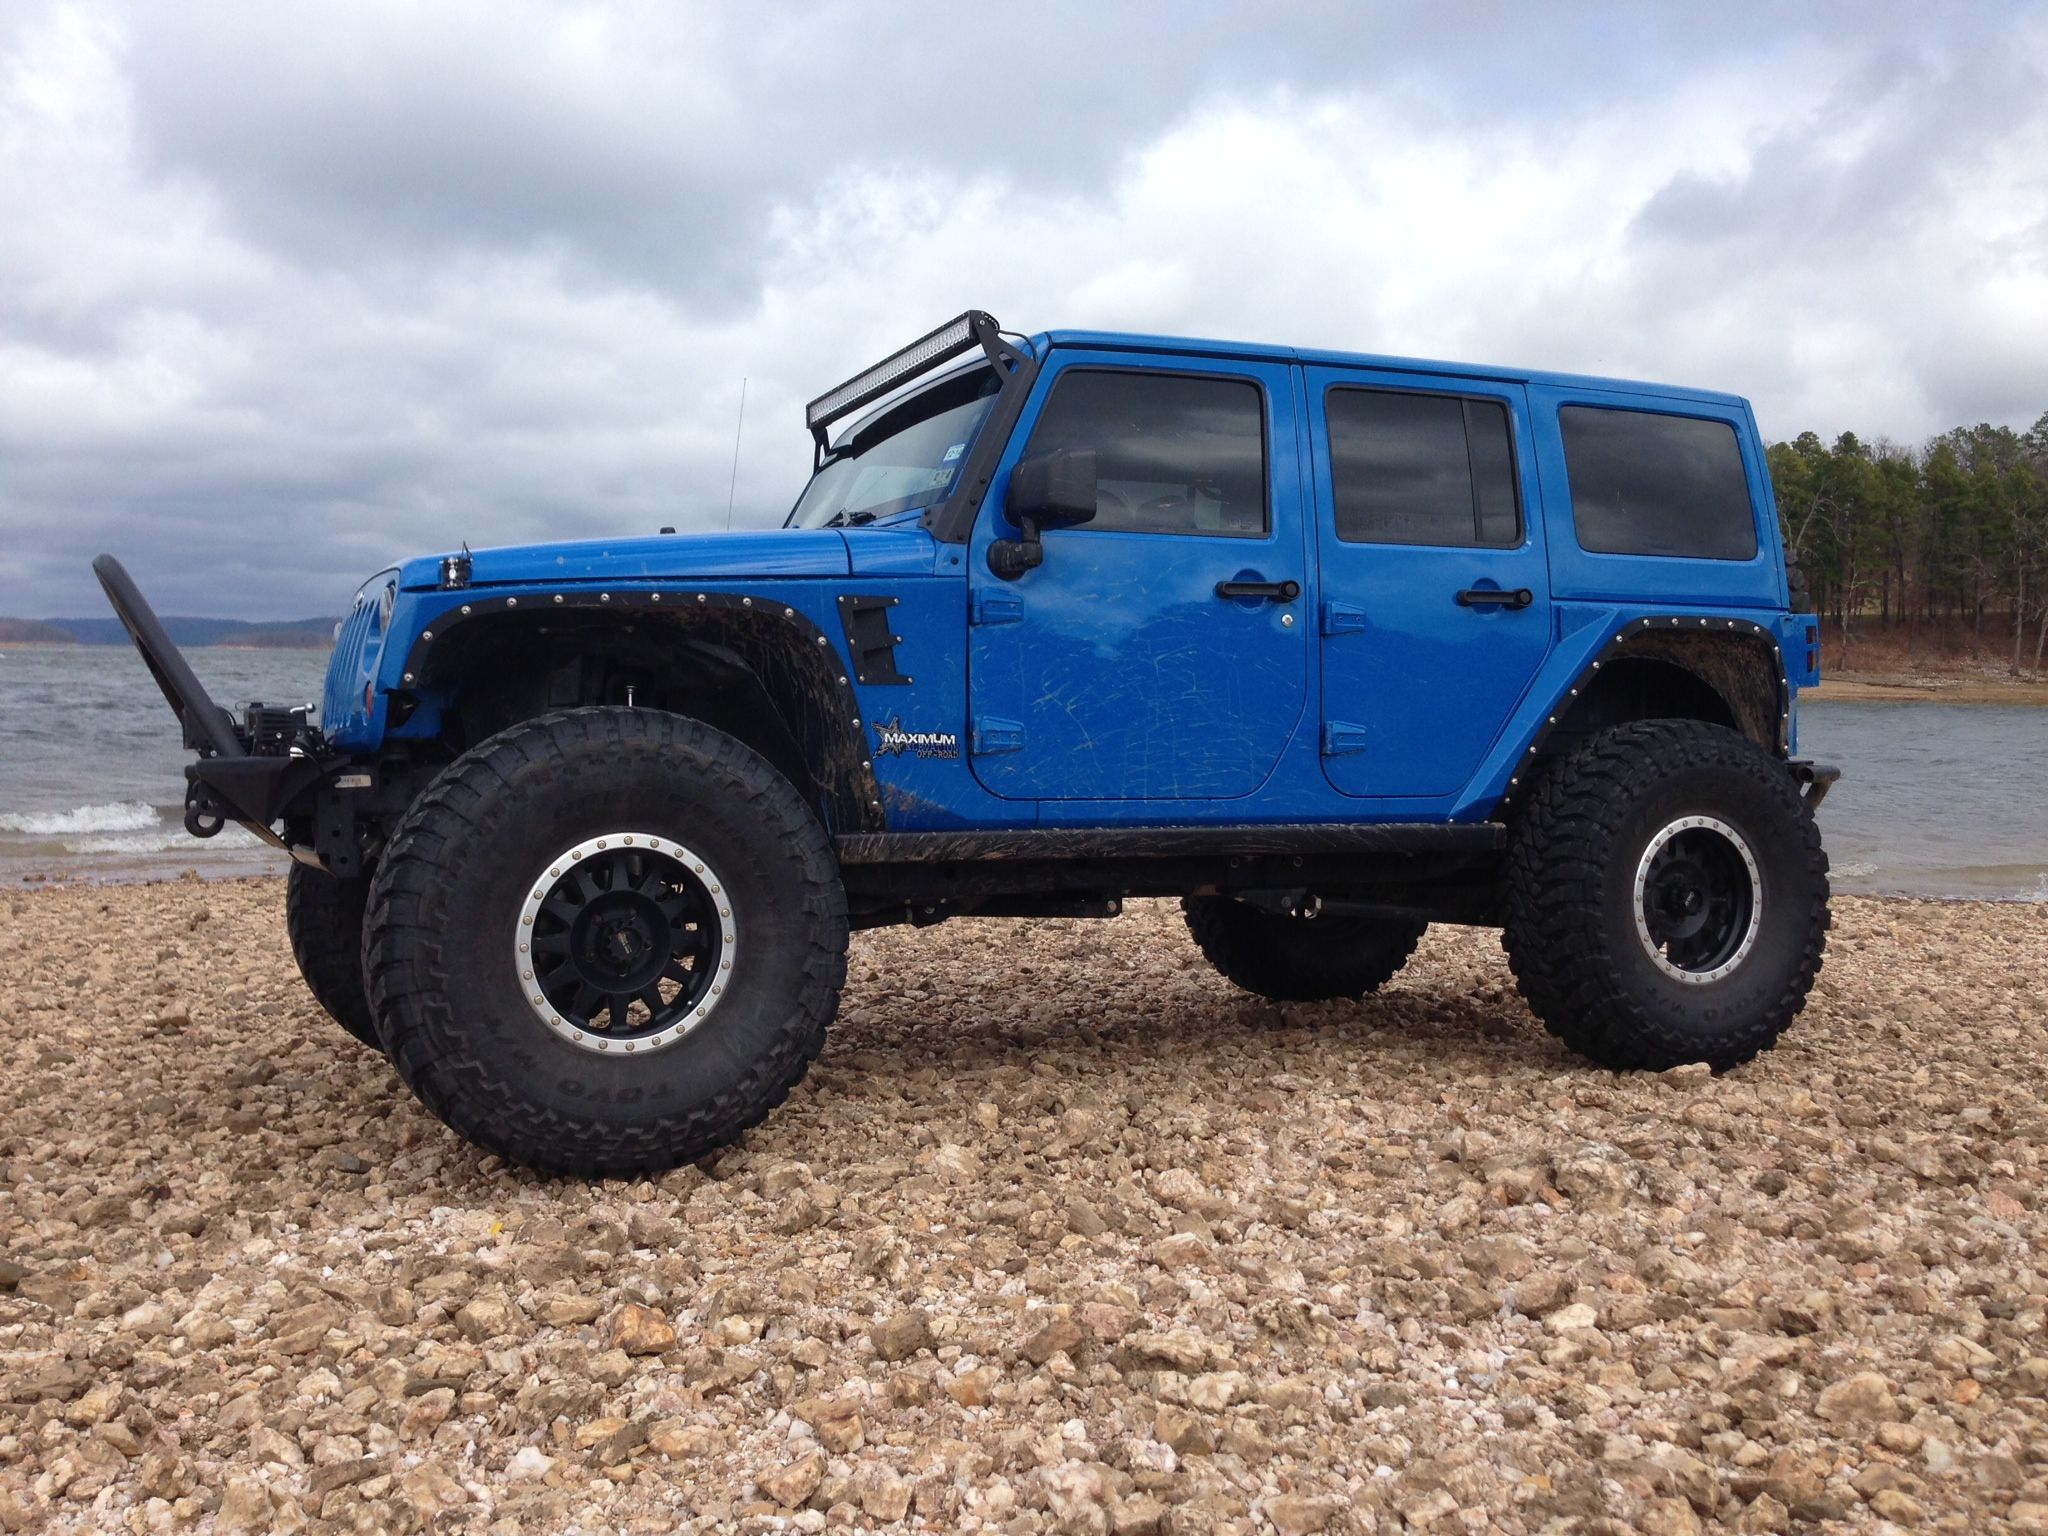 Jeepin Mudder Facebook Jeep Cars Blue Jeep Jeep Lover